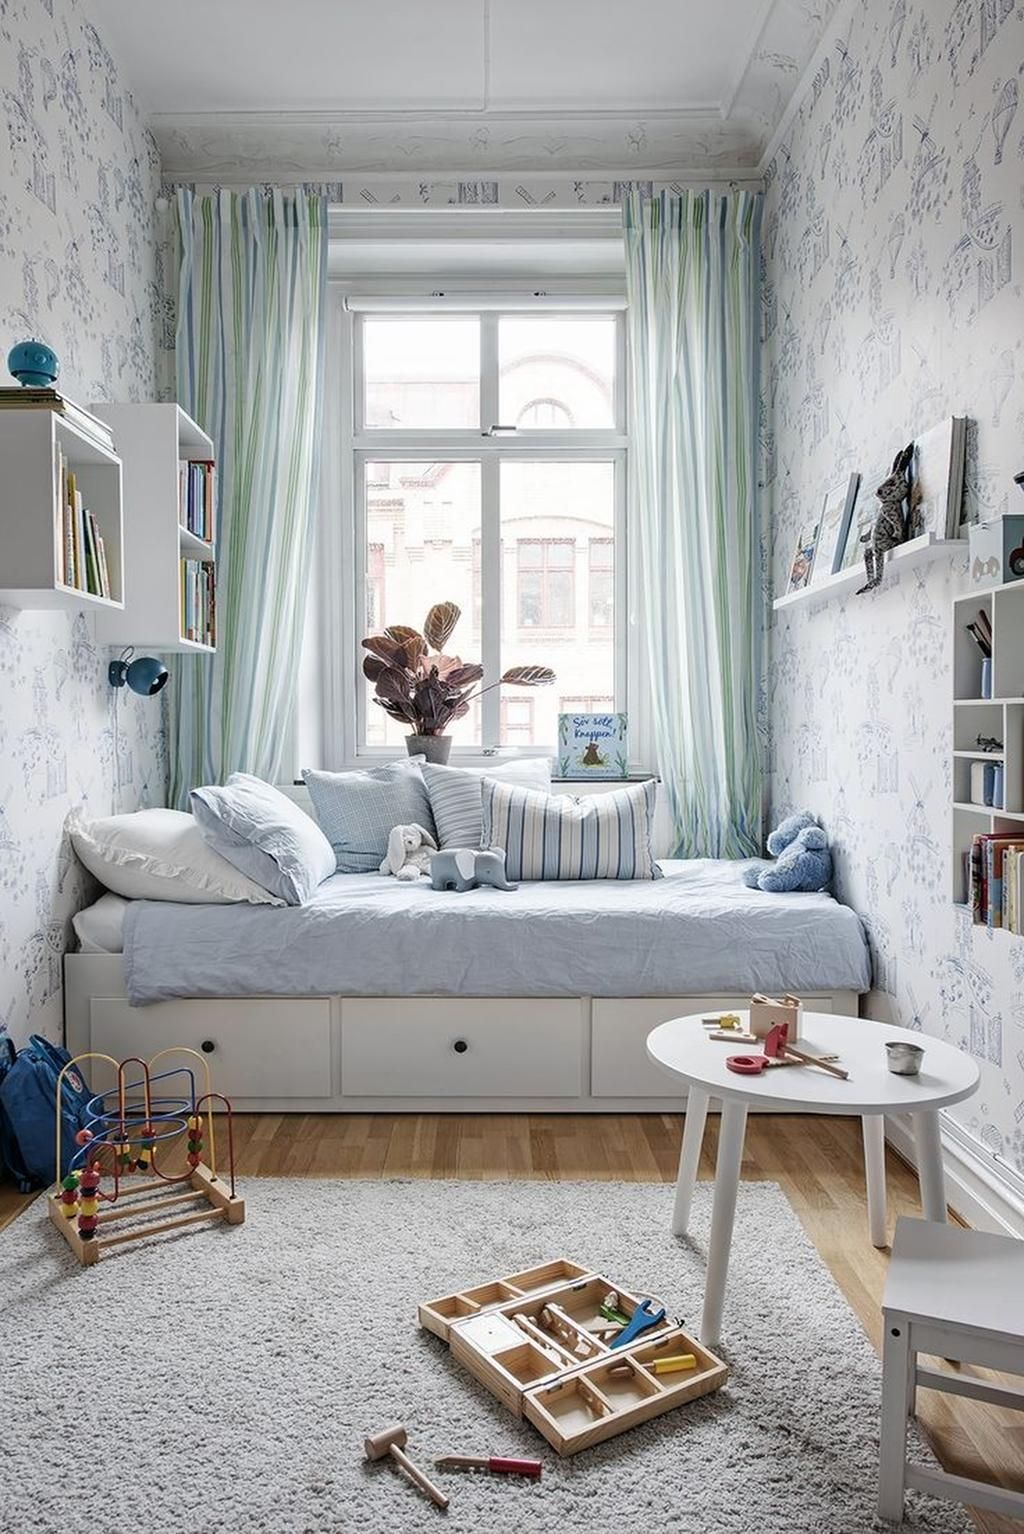 5 smart ideas for your small children's room - Lunamag.com #kidsrooms